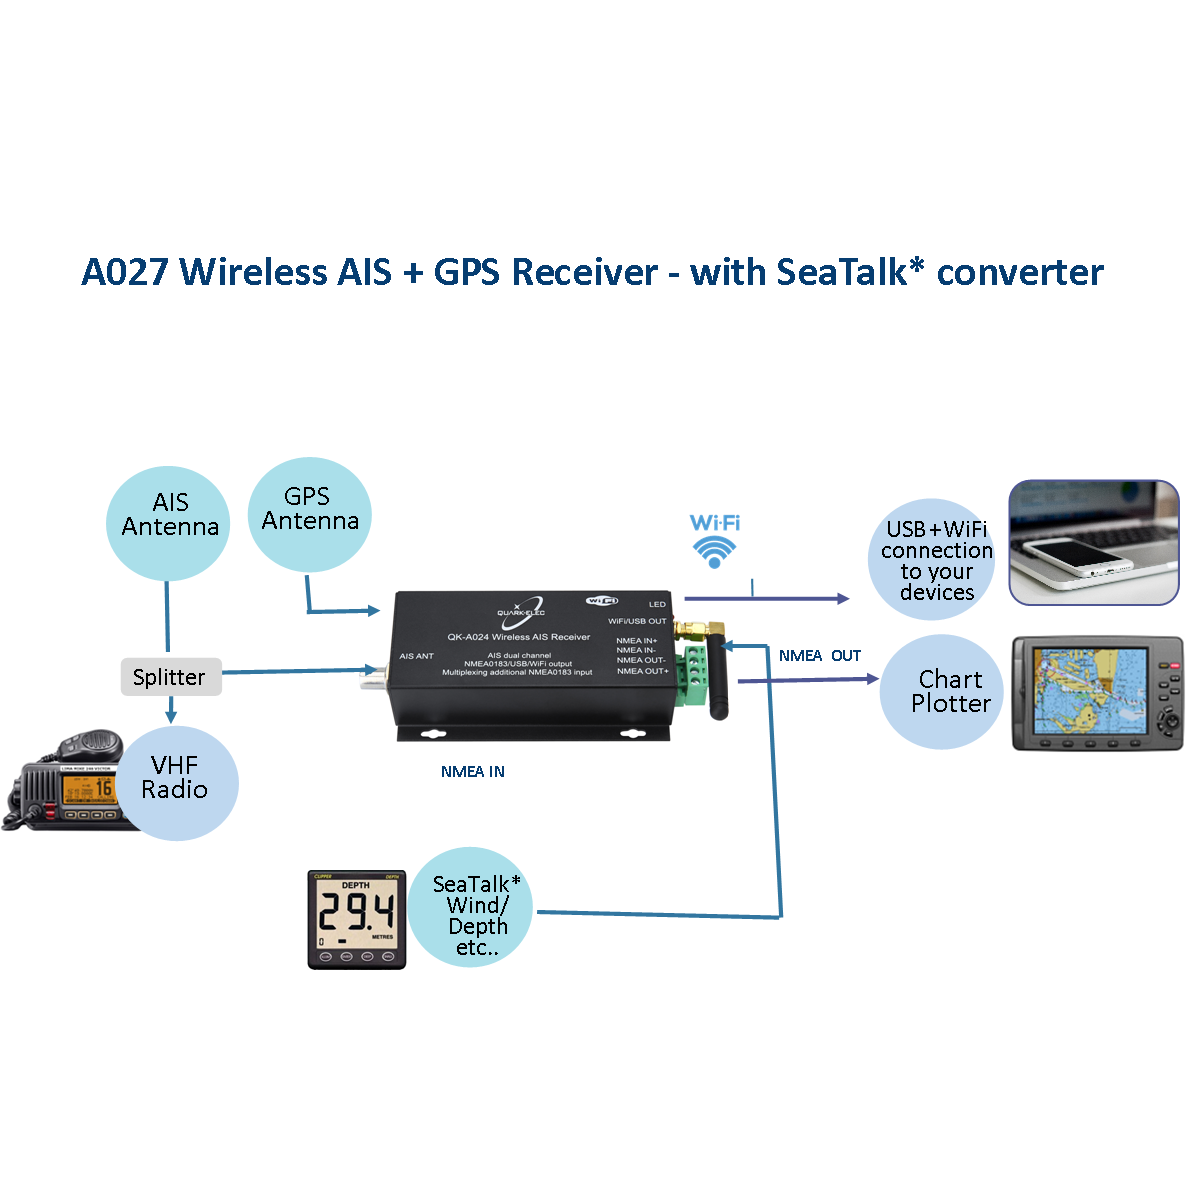 hight resolution of it can receive information from both ais frequencies simultaneously it includes an integrated gps module that can track up to 22 satellites